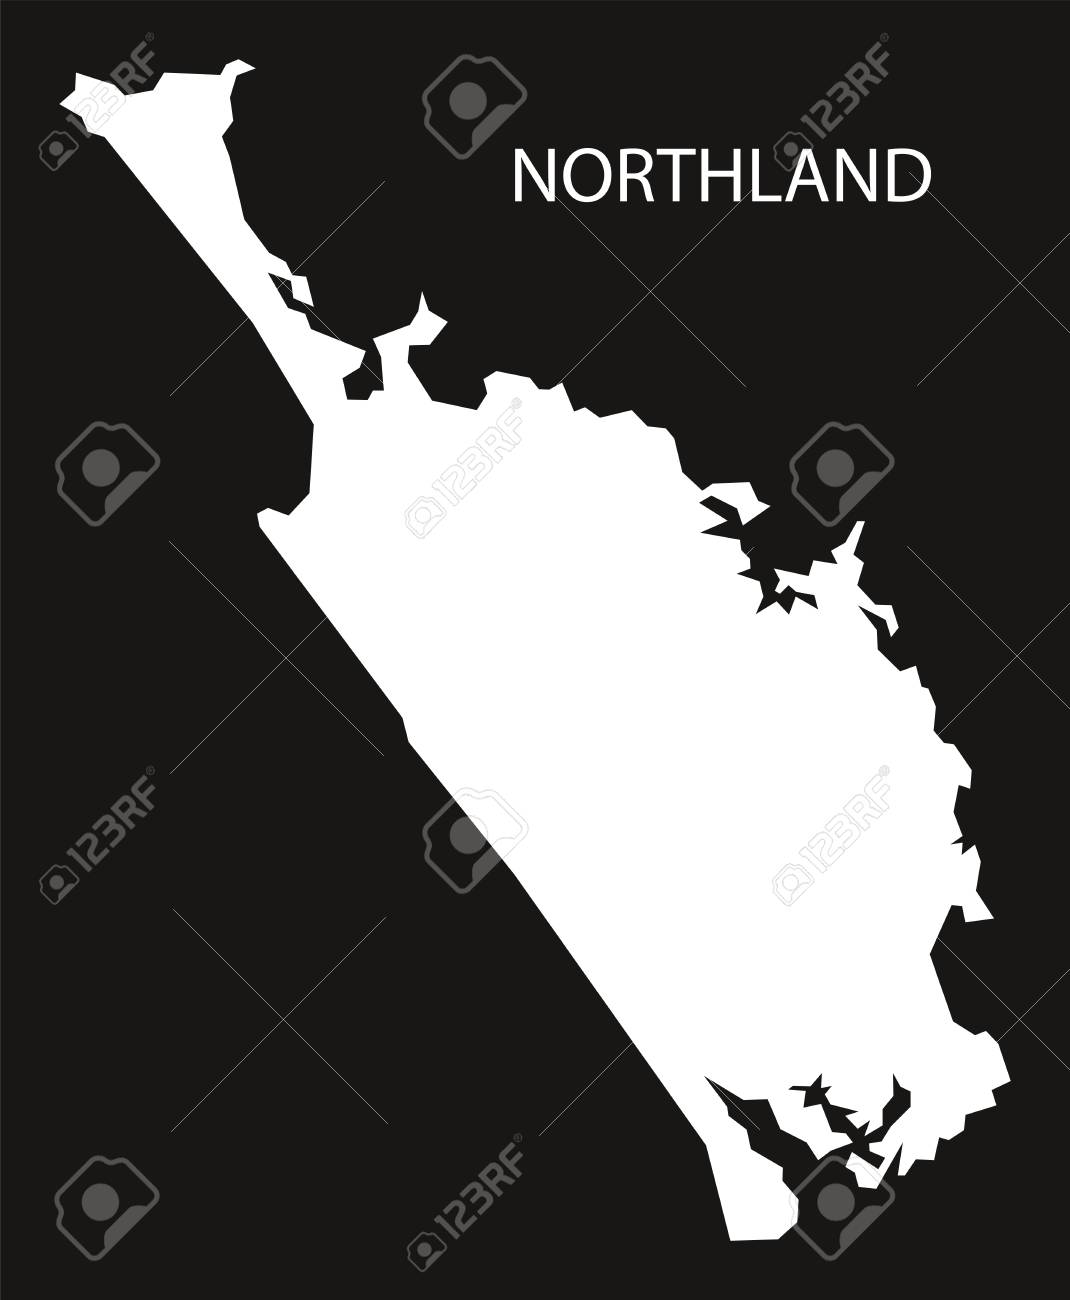 Northland New Zealand Map.Northland New Zealand Map Black Inverted Silhouette Illustration